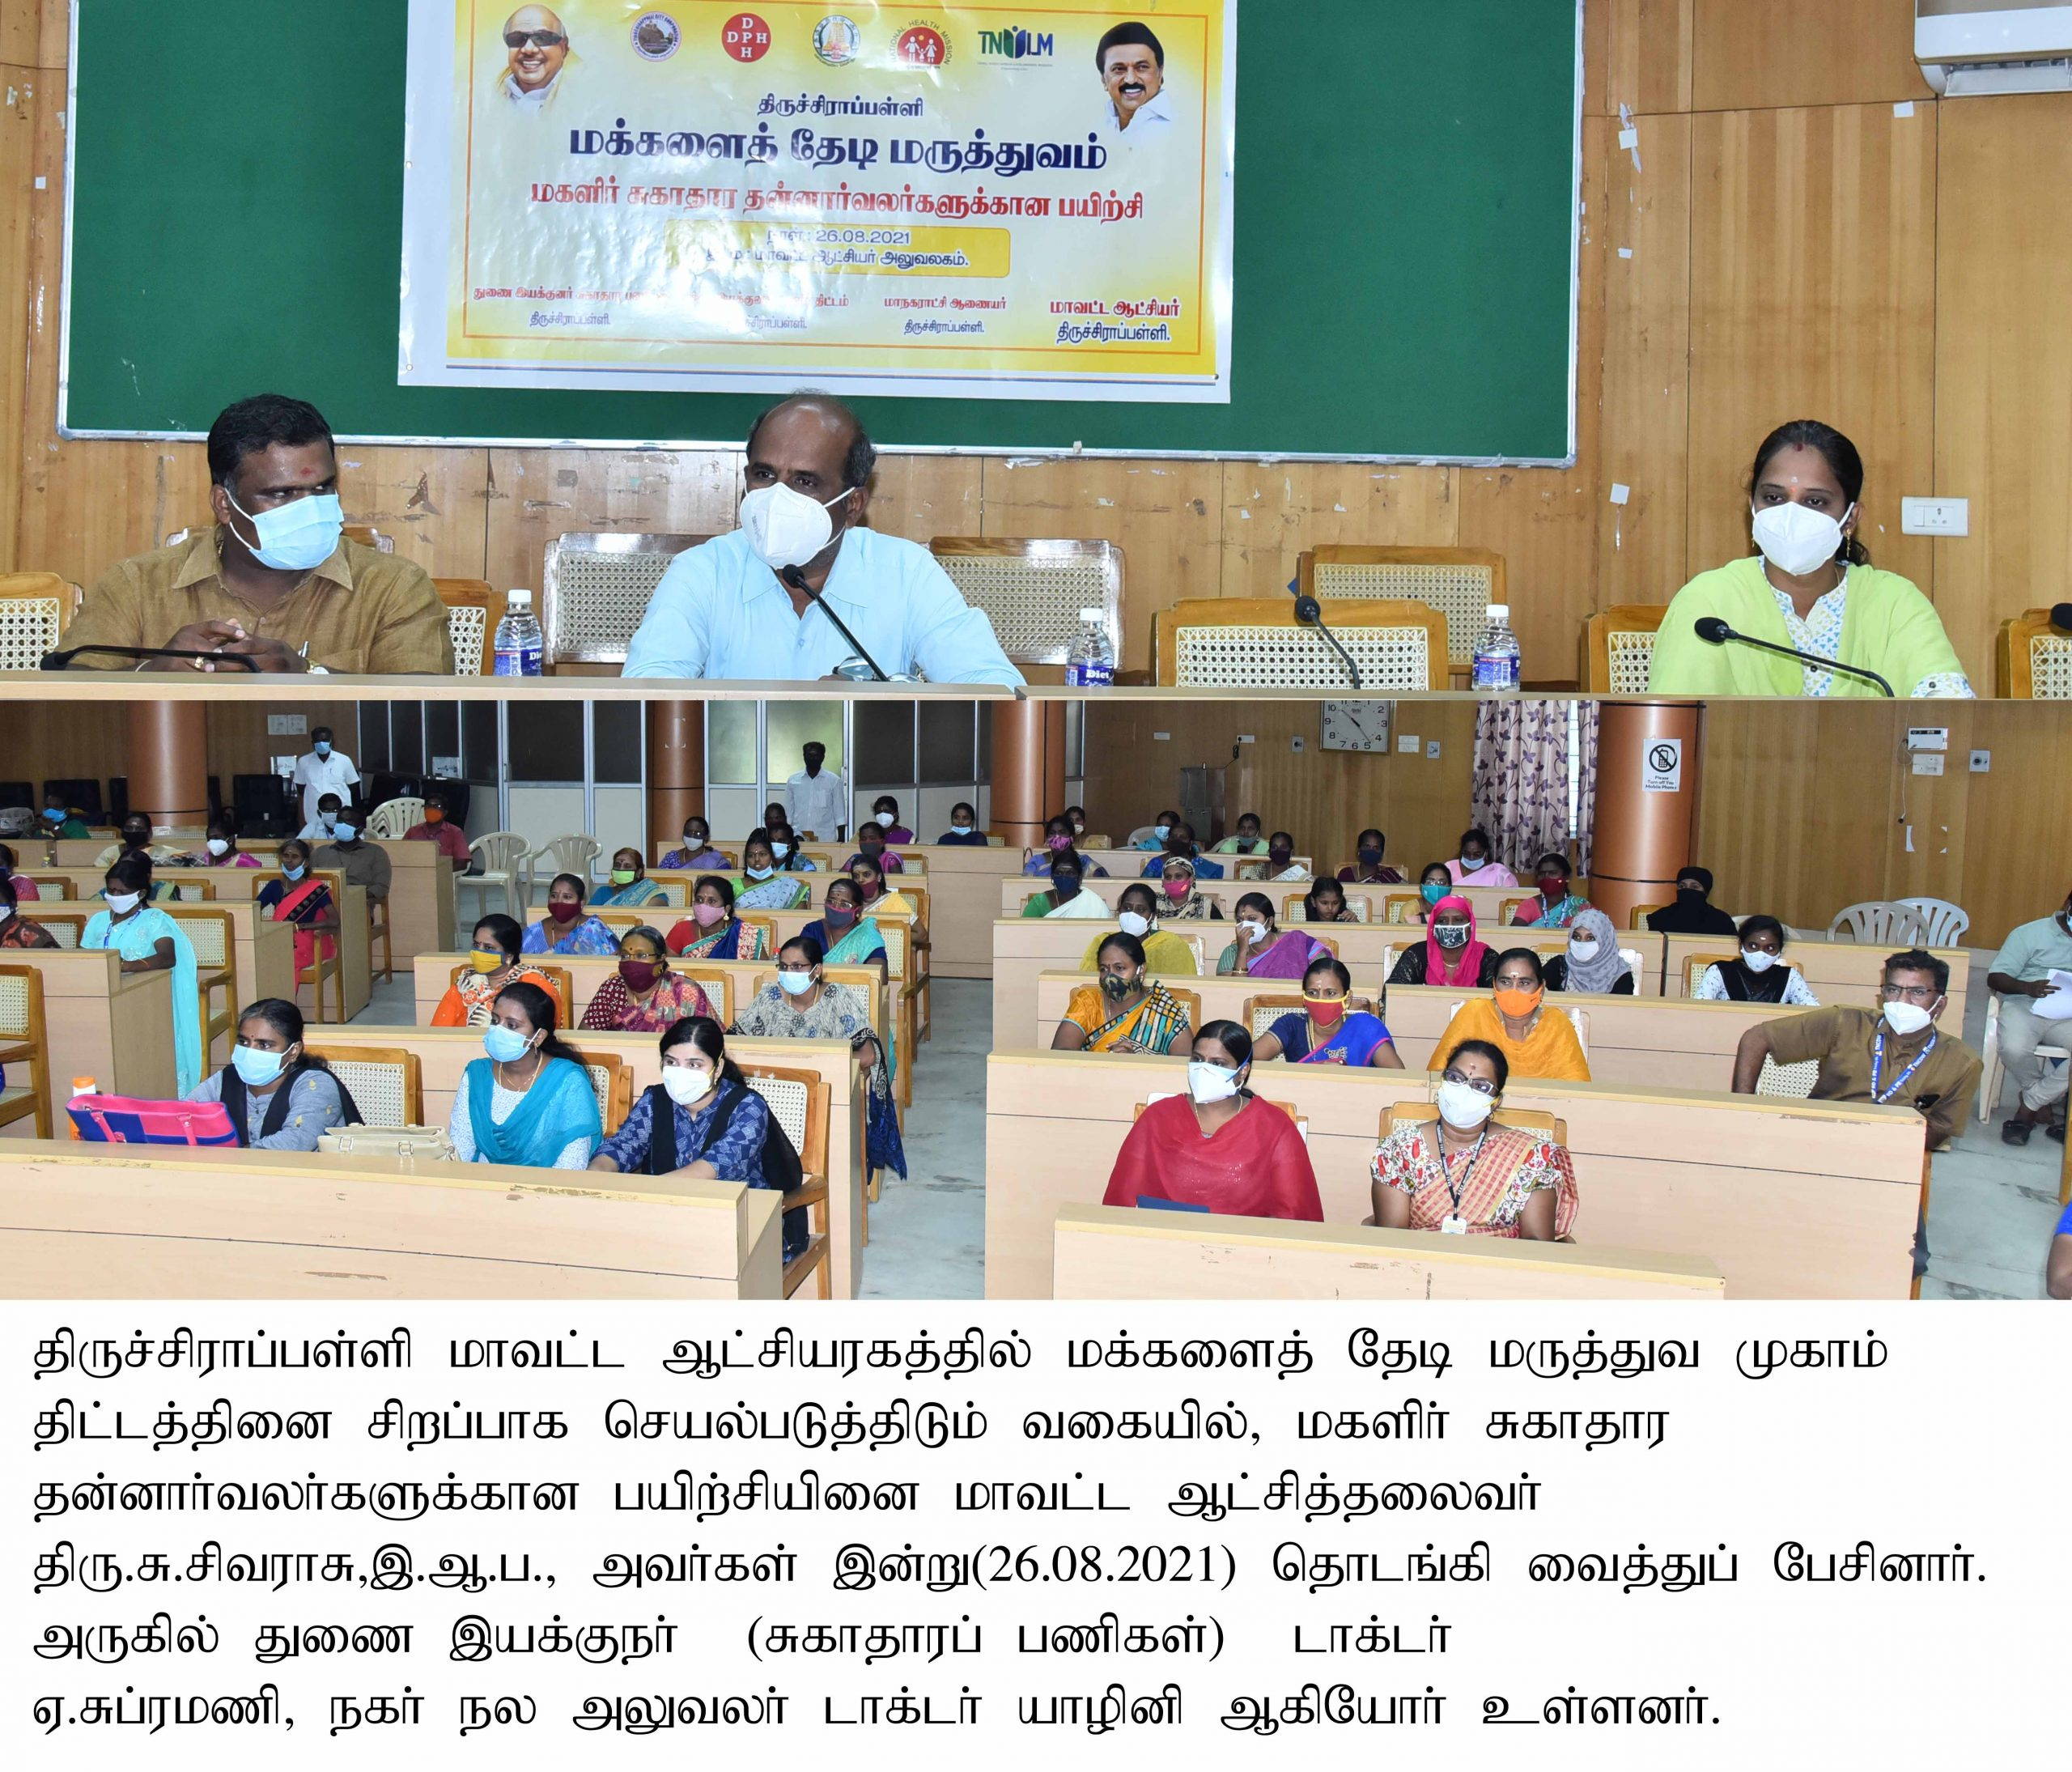 District Collector inaugurated the training for womens health volunteers on 26-08-2021- Makkalai Thaedi Maruthuvam Project